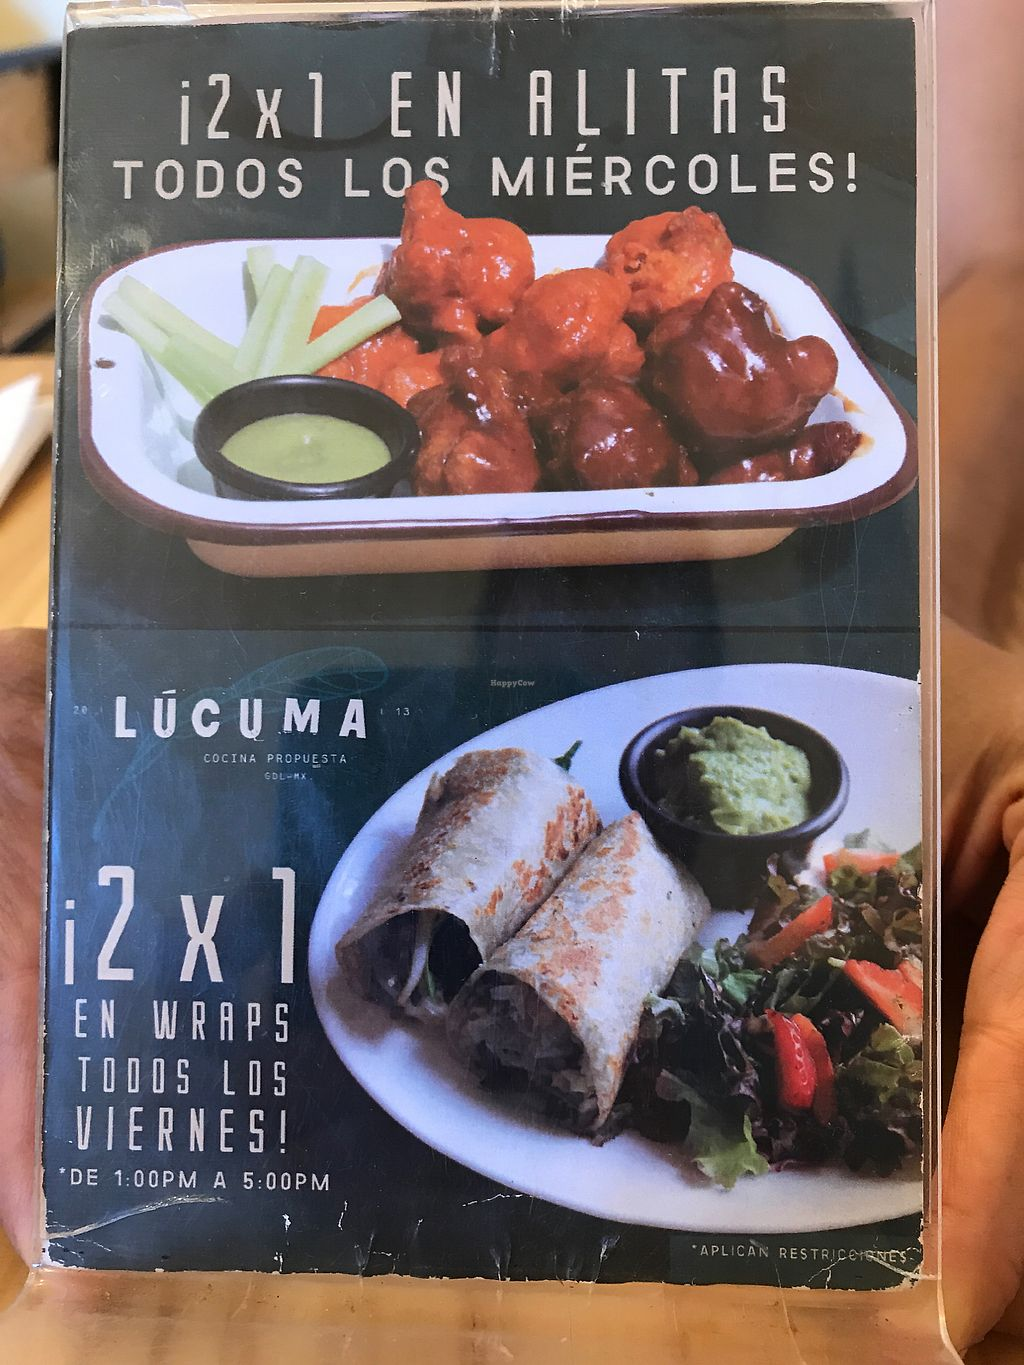 "Photo of Lucuma  by <a href=""/members/profile/GaryBartlett"">GaryBartlett</a> <br/>Specials 2x1 Wings on Wednesday (must go!) 2x1 wraps on Fridays 1pm to 5pm <br/> April 8, 2018  - <a href='/contact/abuse/image/44126/382674'>Report</a>"